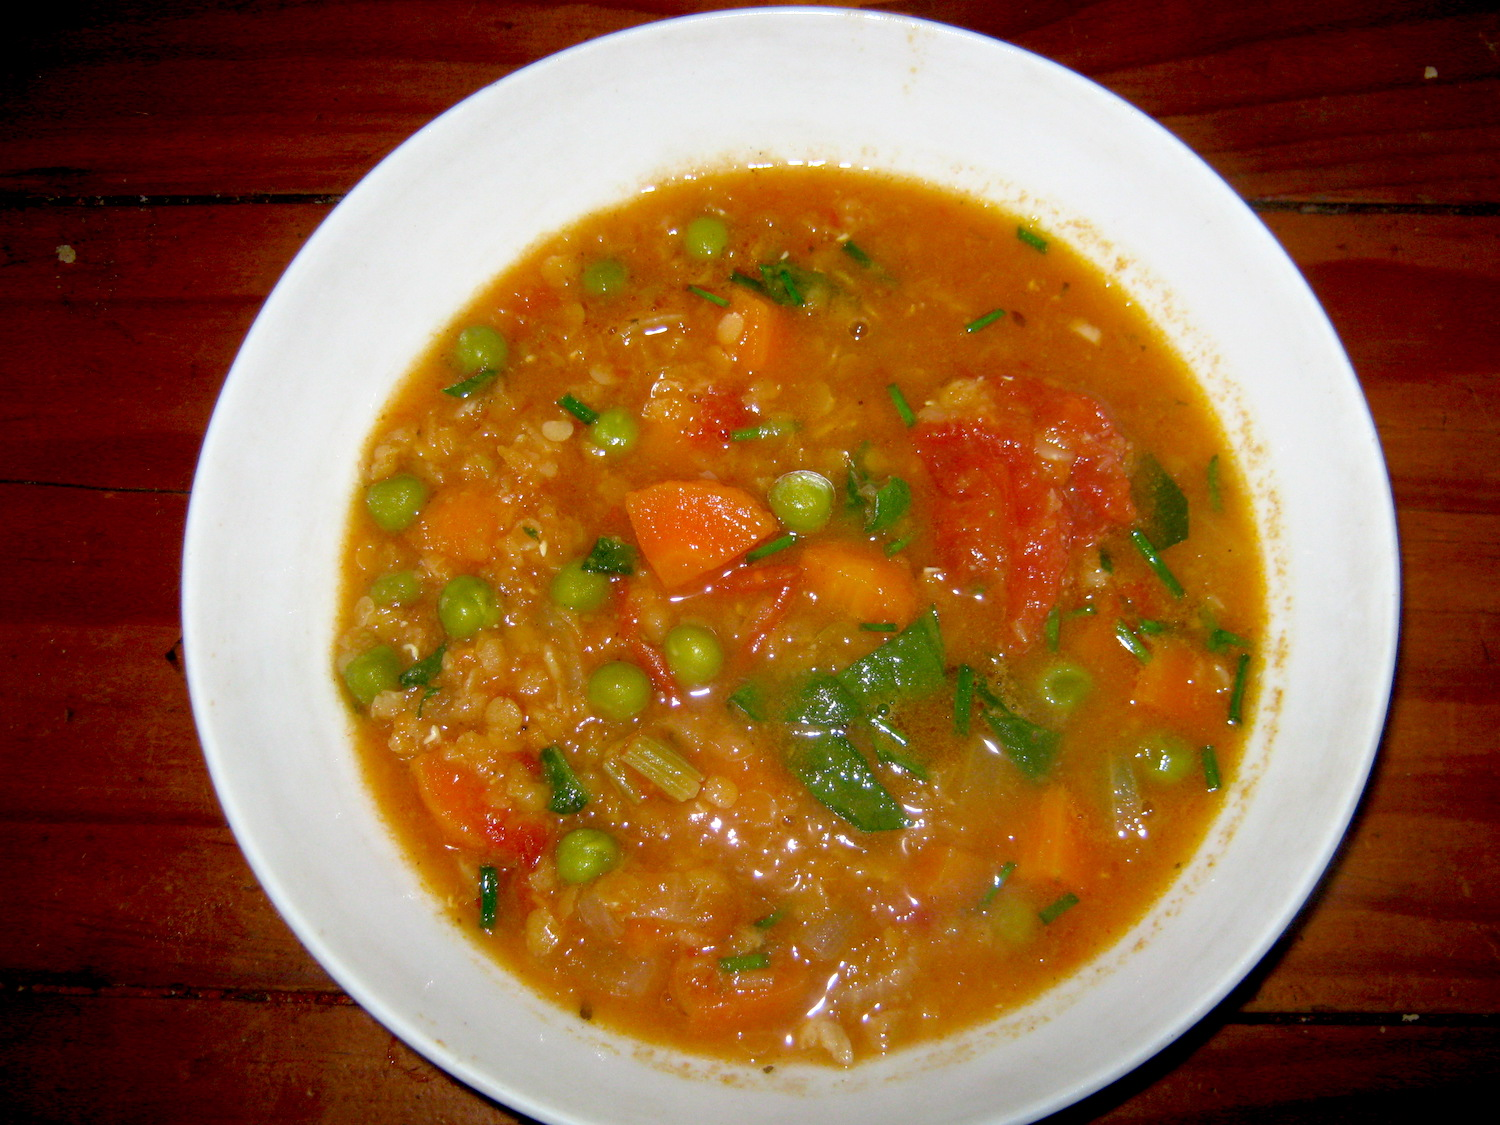 Vegan Lentil tomato soup in a white bowl